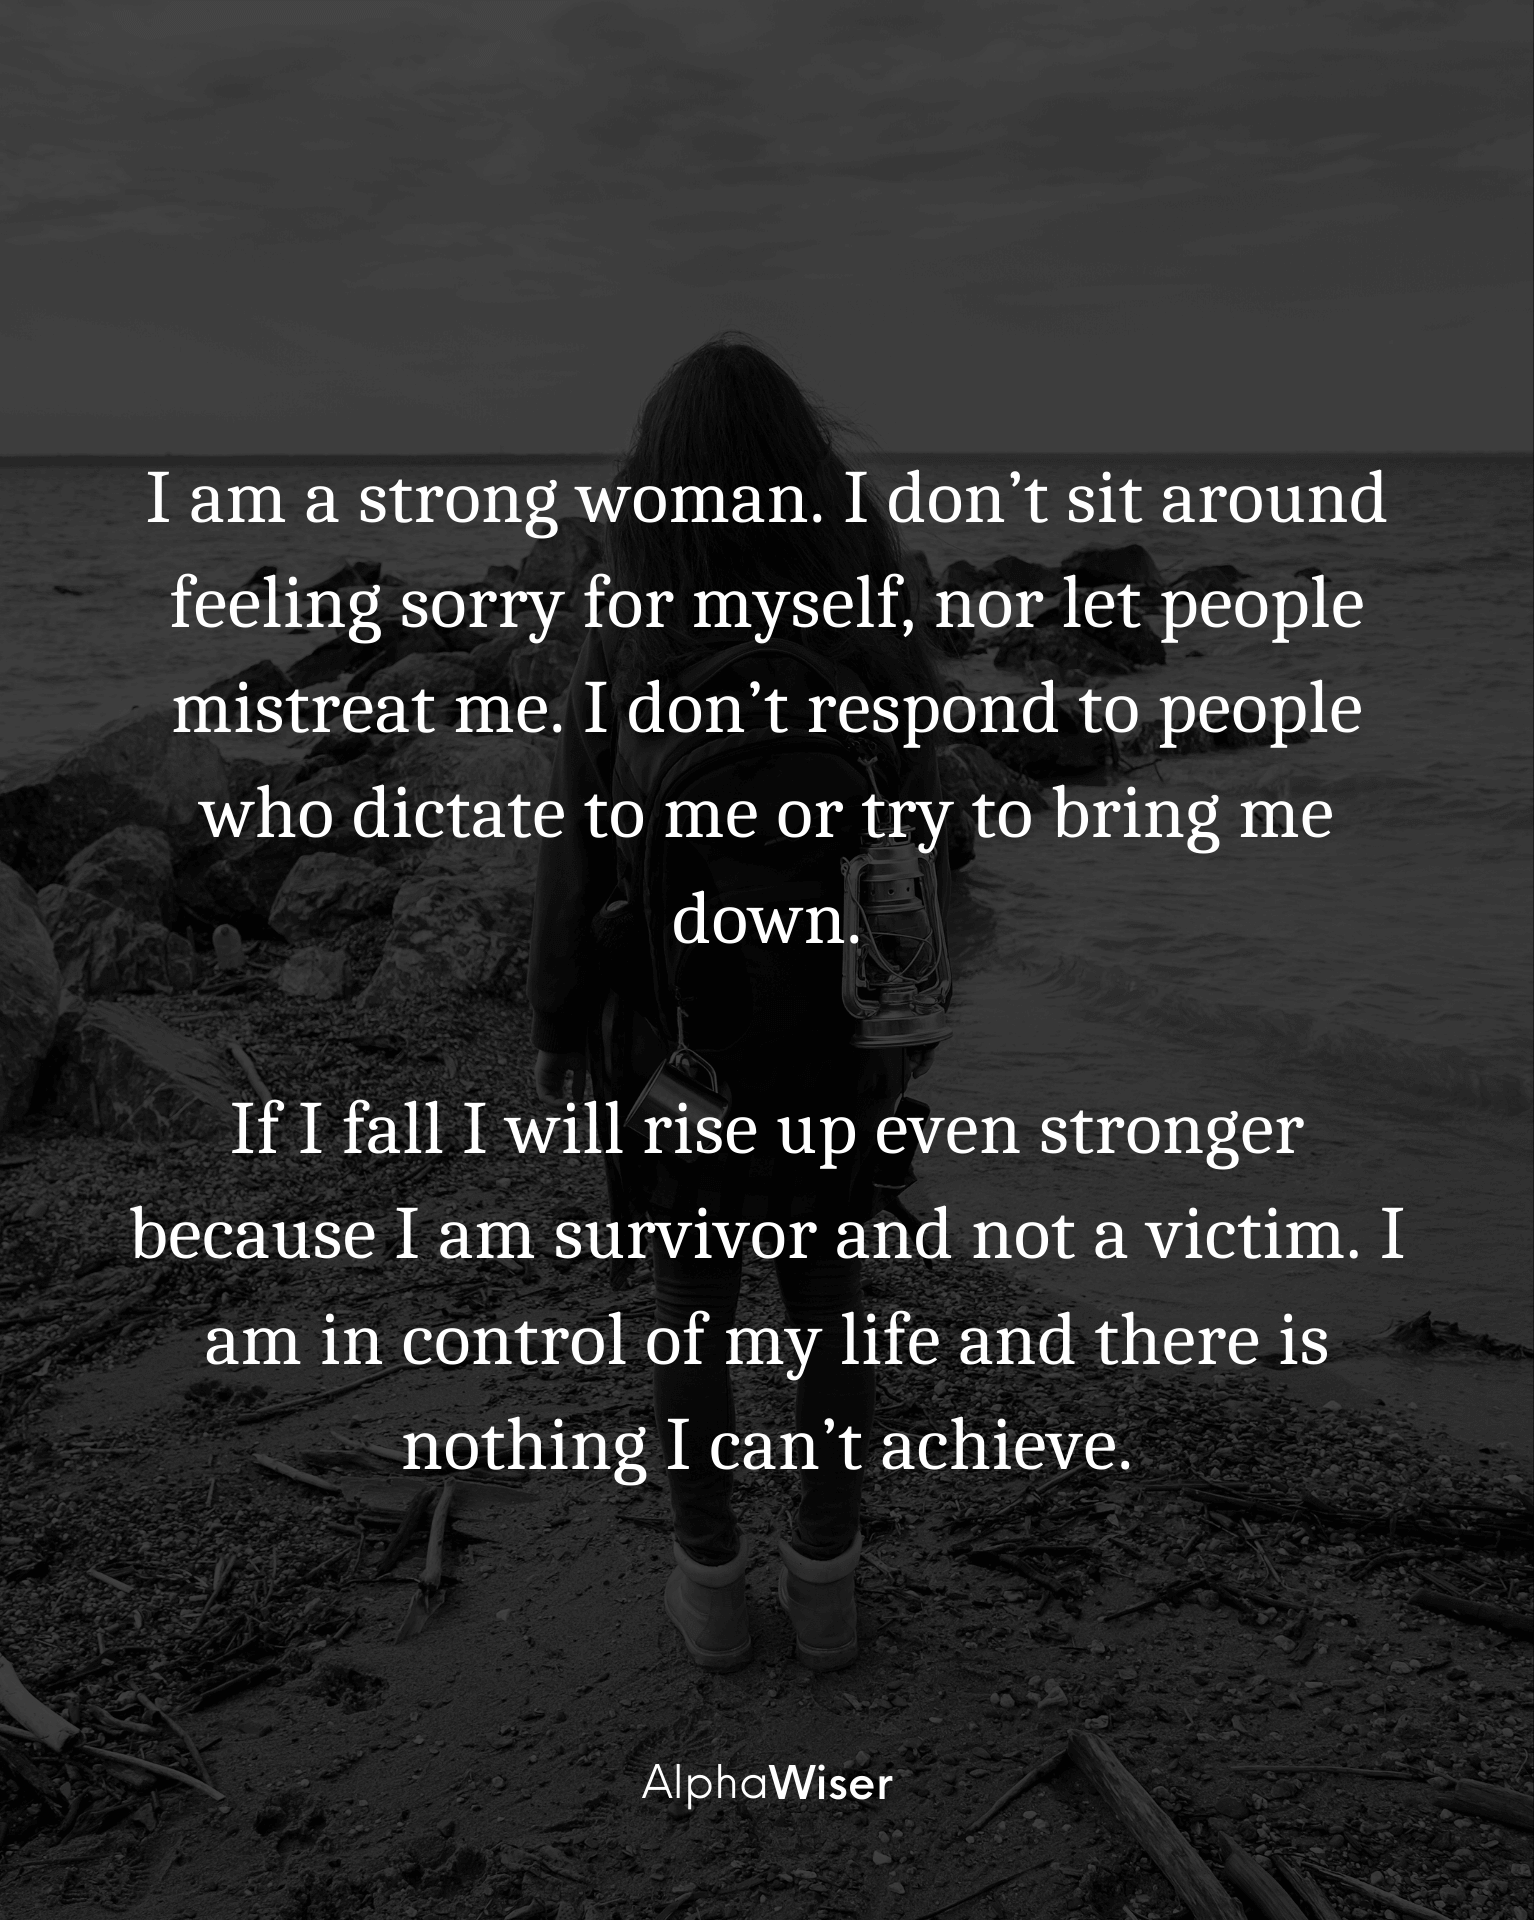 I Am A Strong Woman I Don T Sit Around Feeling Sorry For Myself New Life Quotes Victim Quotes Good Life Quotes